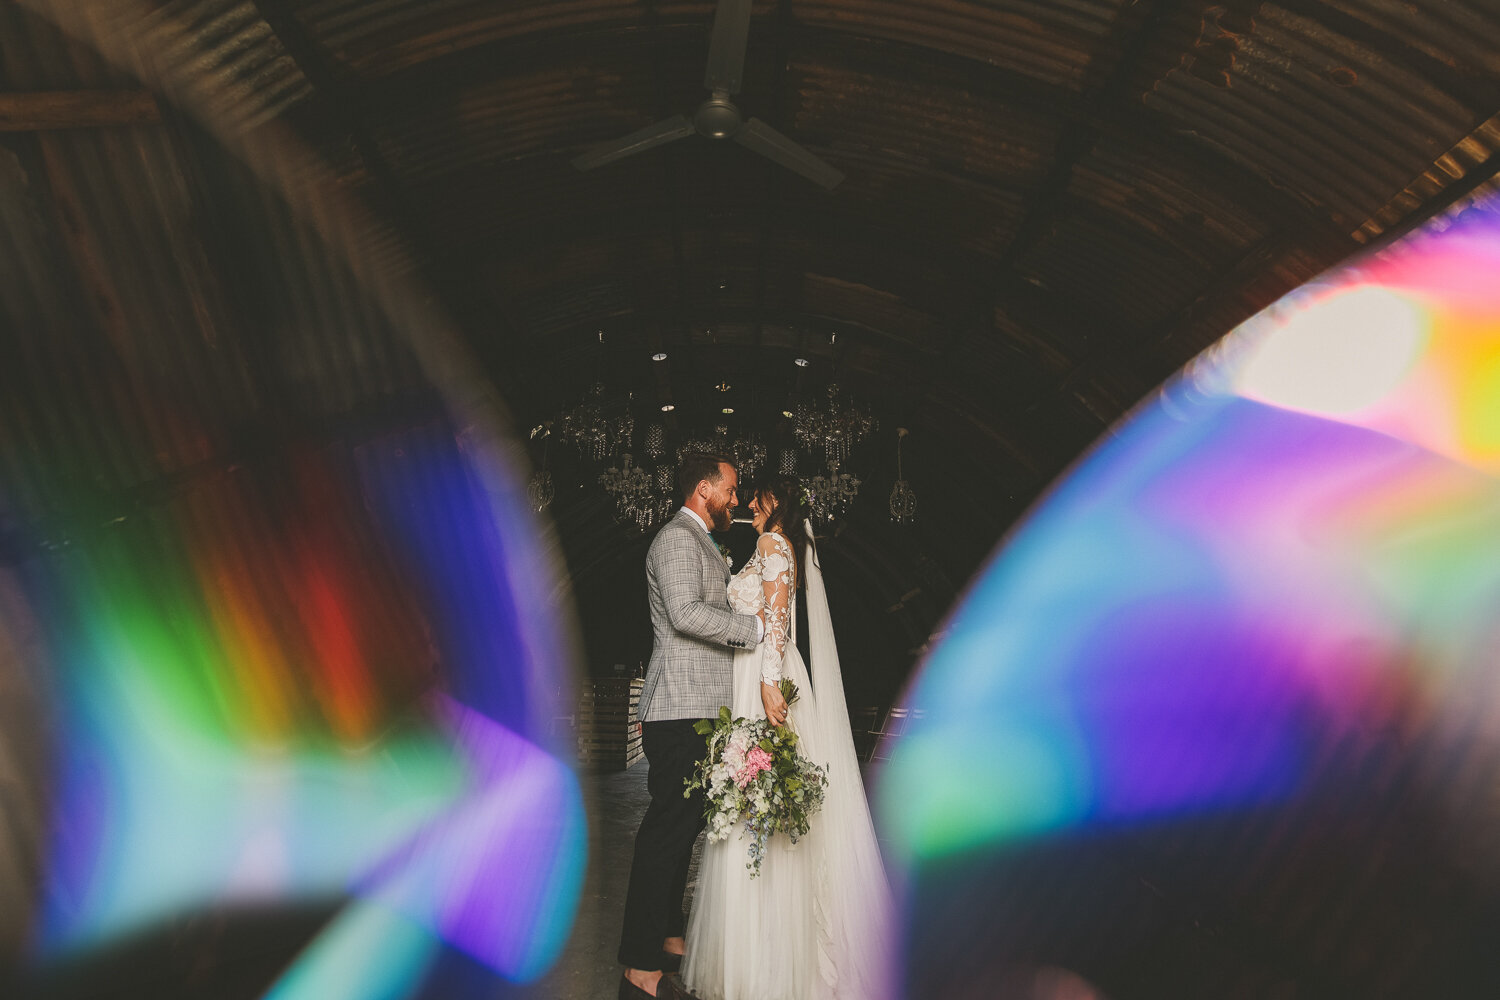 HOW LONG WILL MY WEDDING FILM BE? - For a full wedding day the feature film is around 20 mins and for our half day it's around 10 minutes. Previews are around 3-5 mins and you'll also receive the full ceremony and speeches separately when covered.